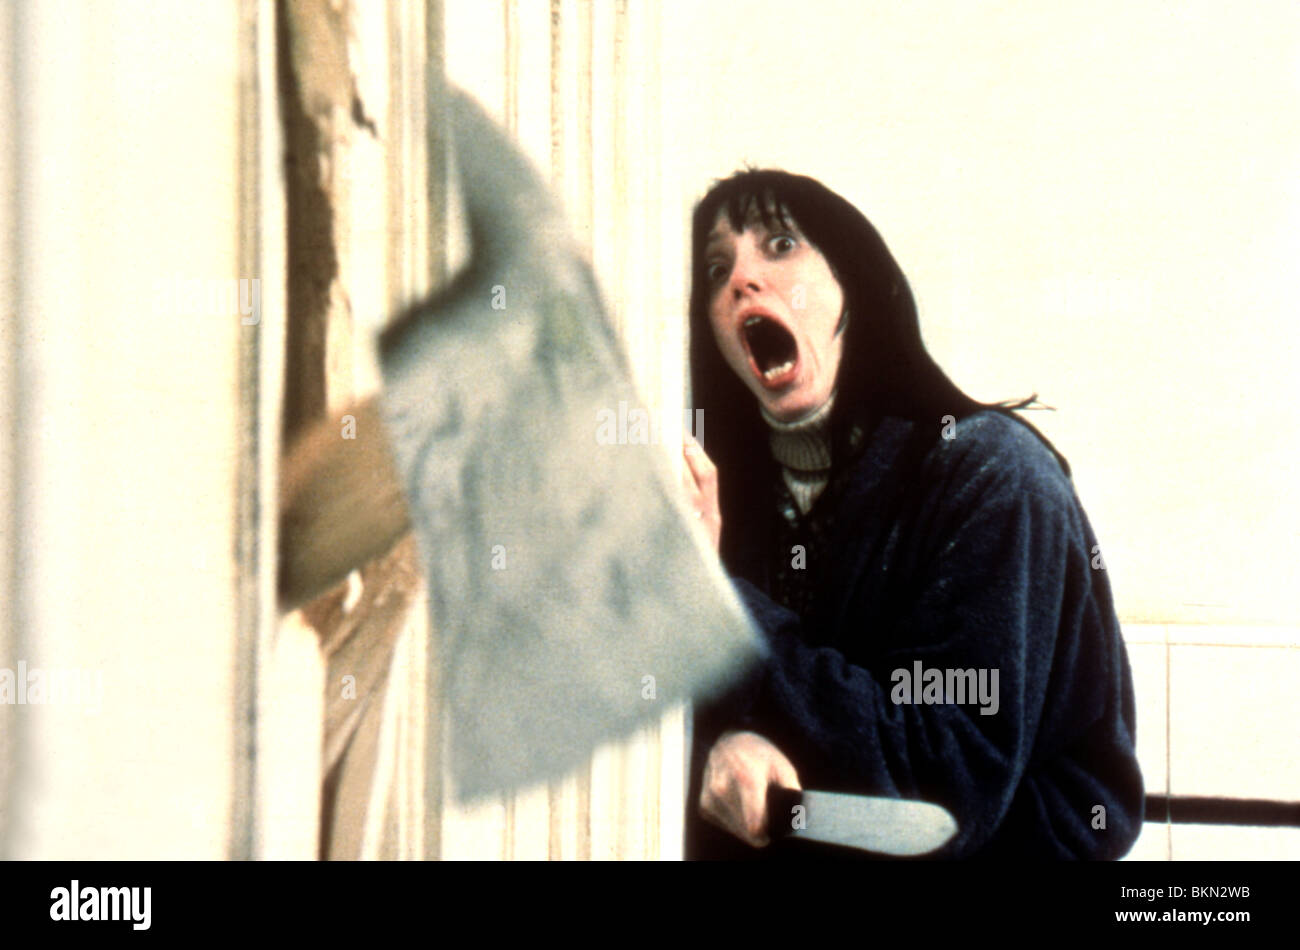 THE SHINING (1980) SHELLEY DUVALL SHI 003 - Stock Image